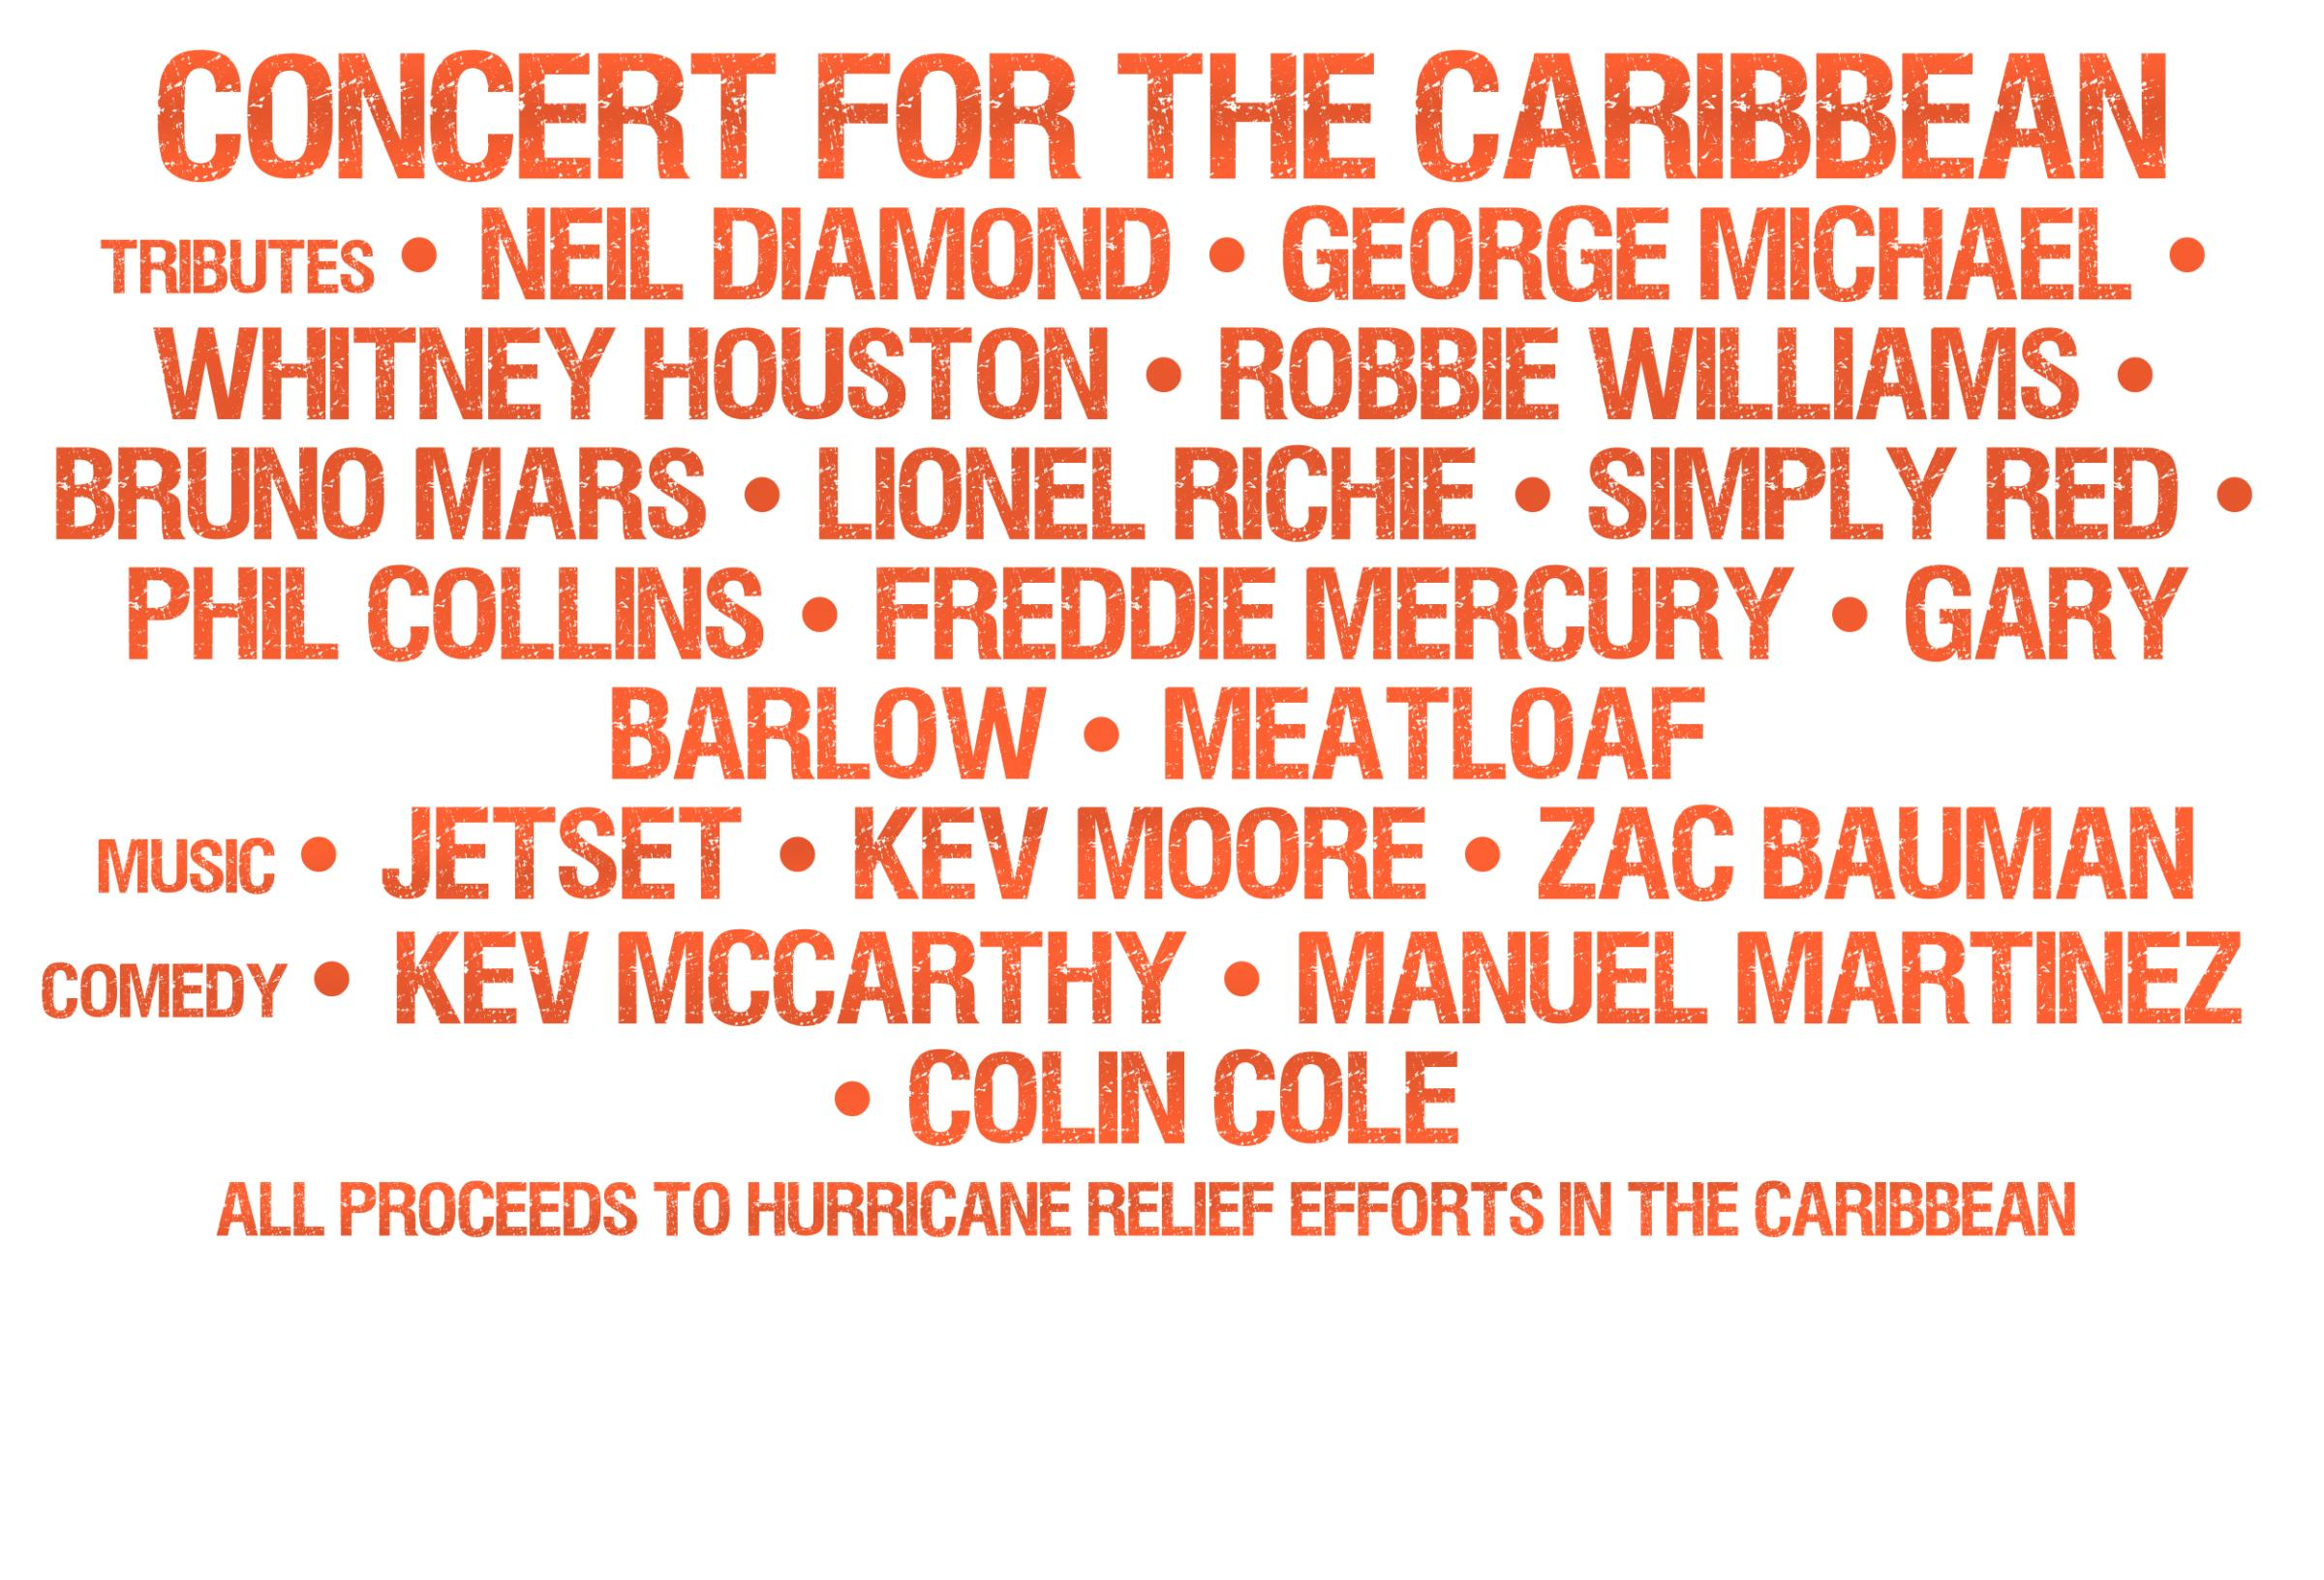 Concert for the Caribbean